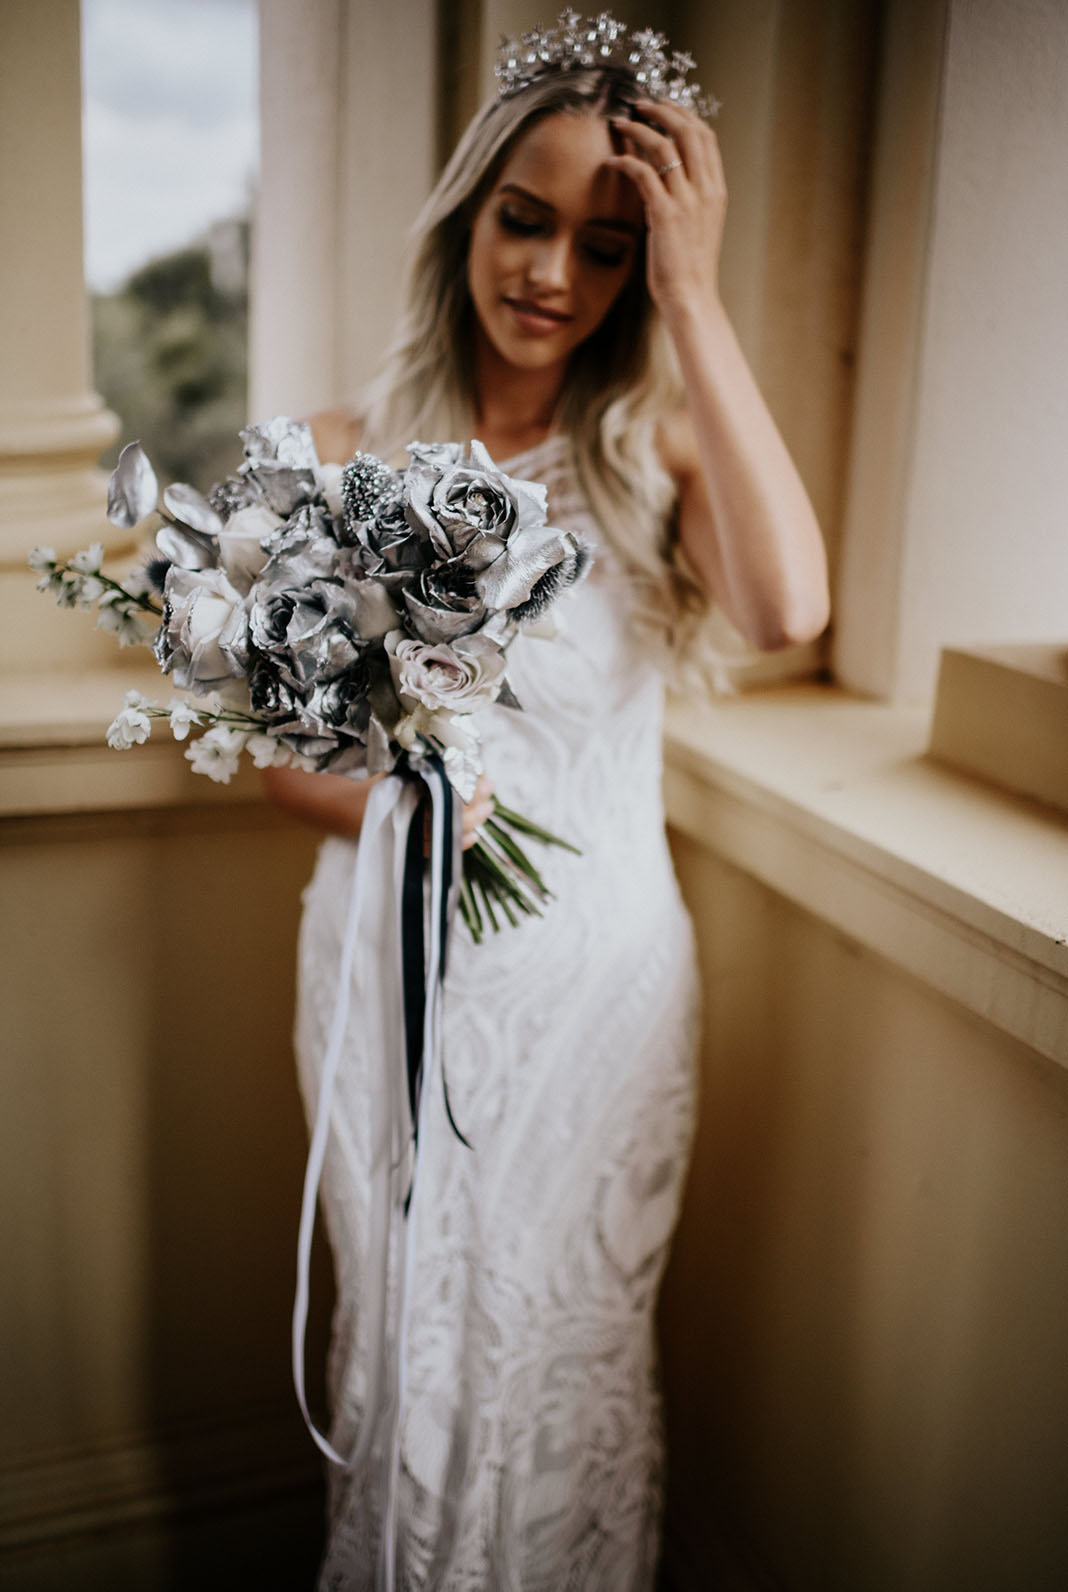 Look at this creative and unique spray painted bridal bouquet, isn't it wow